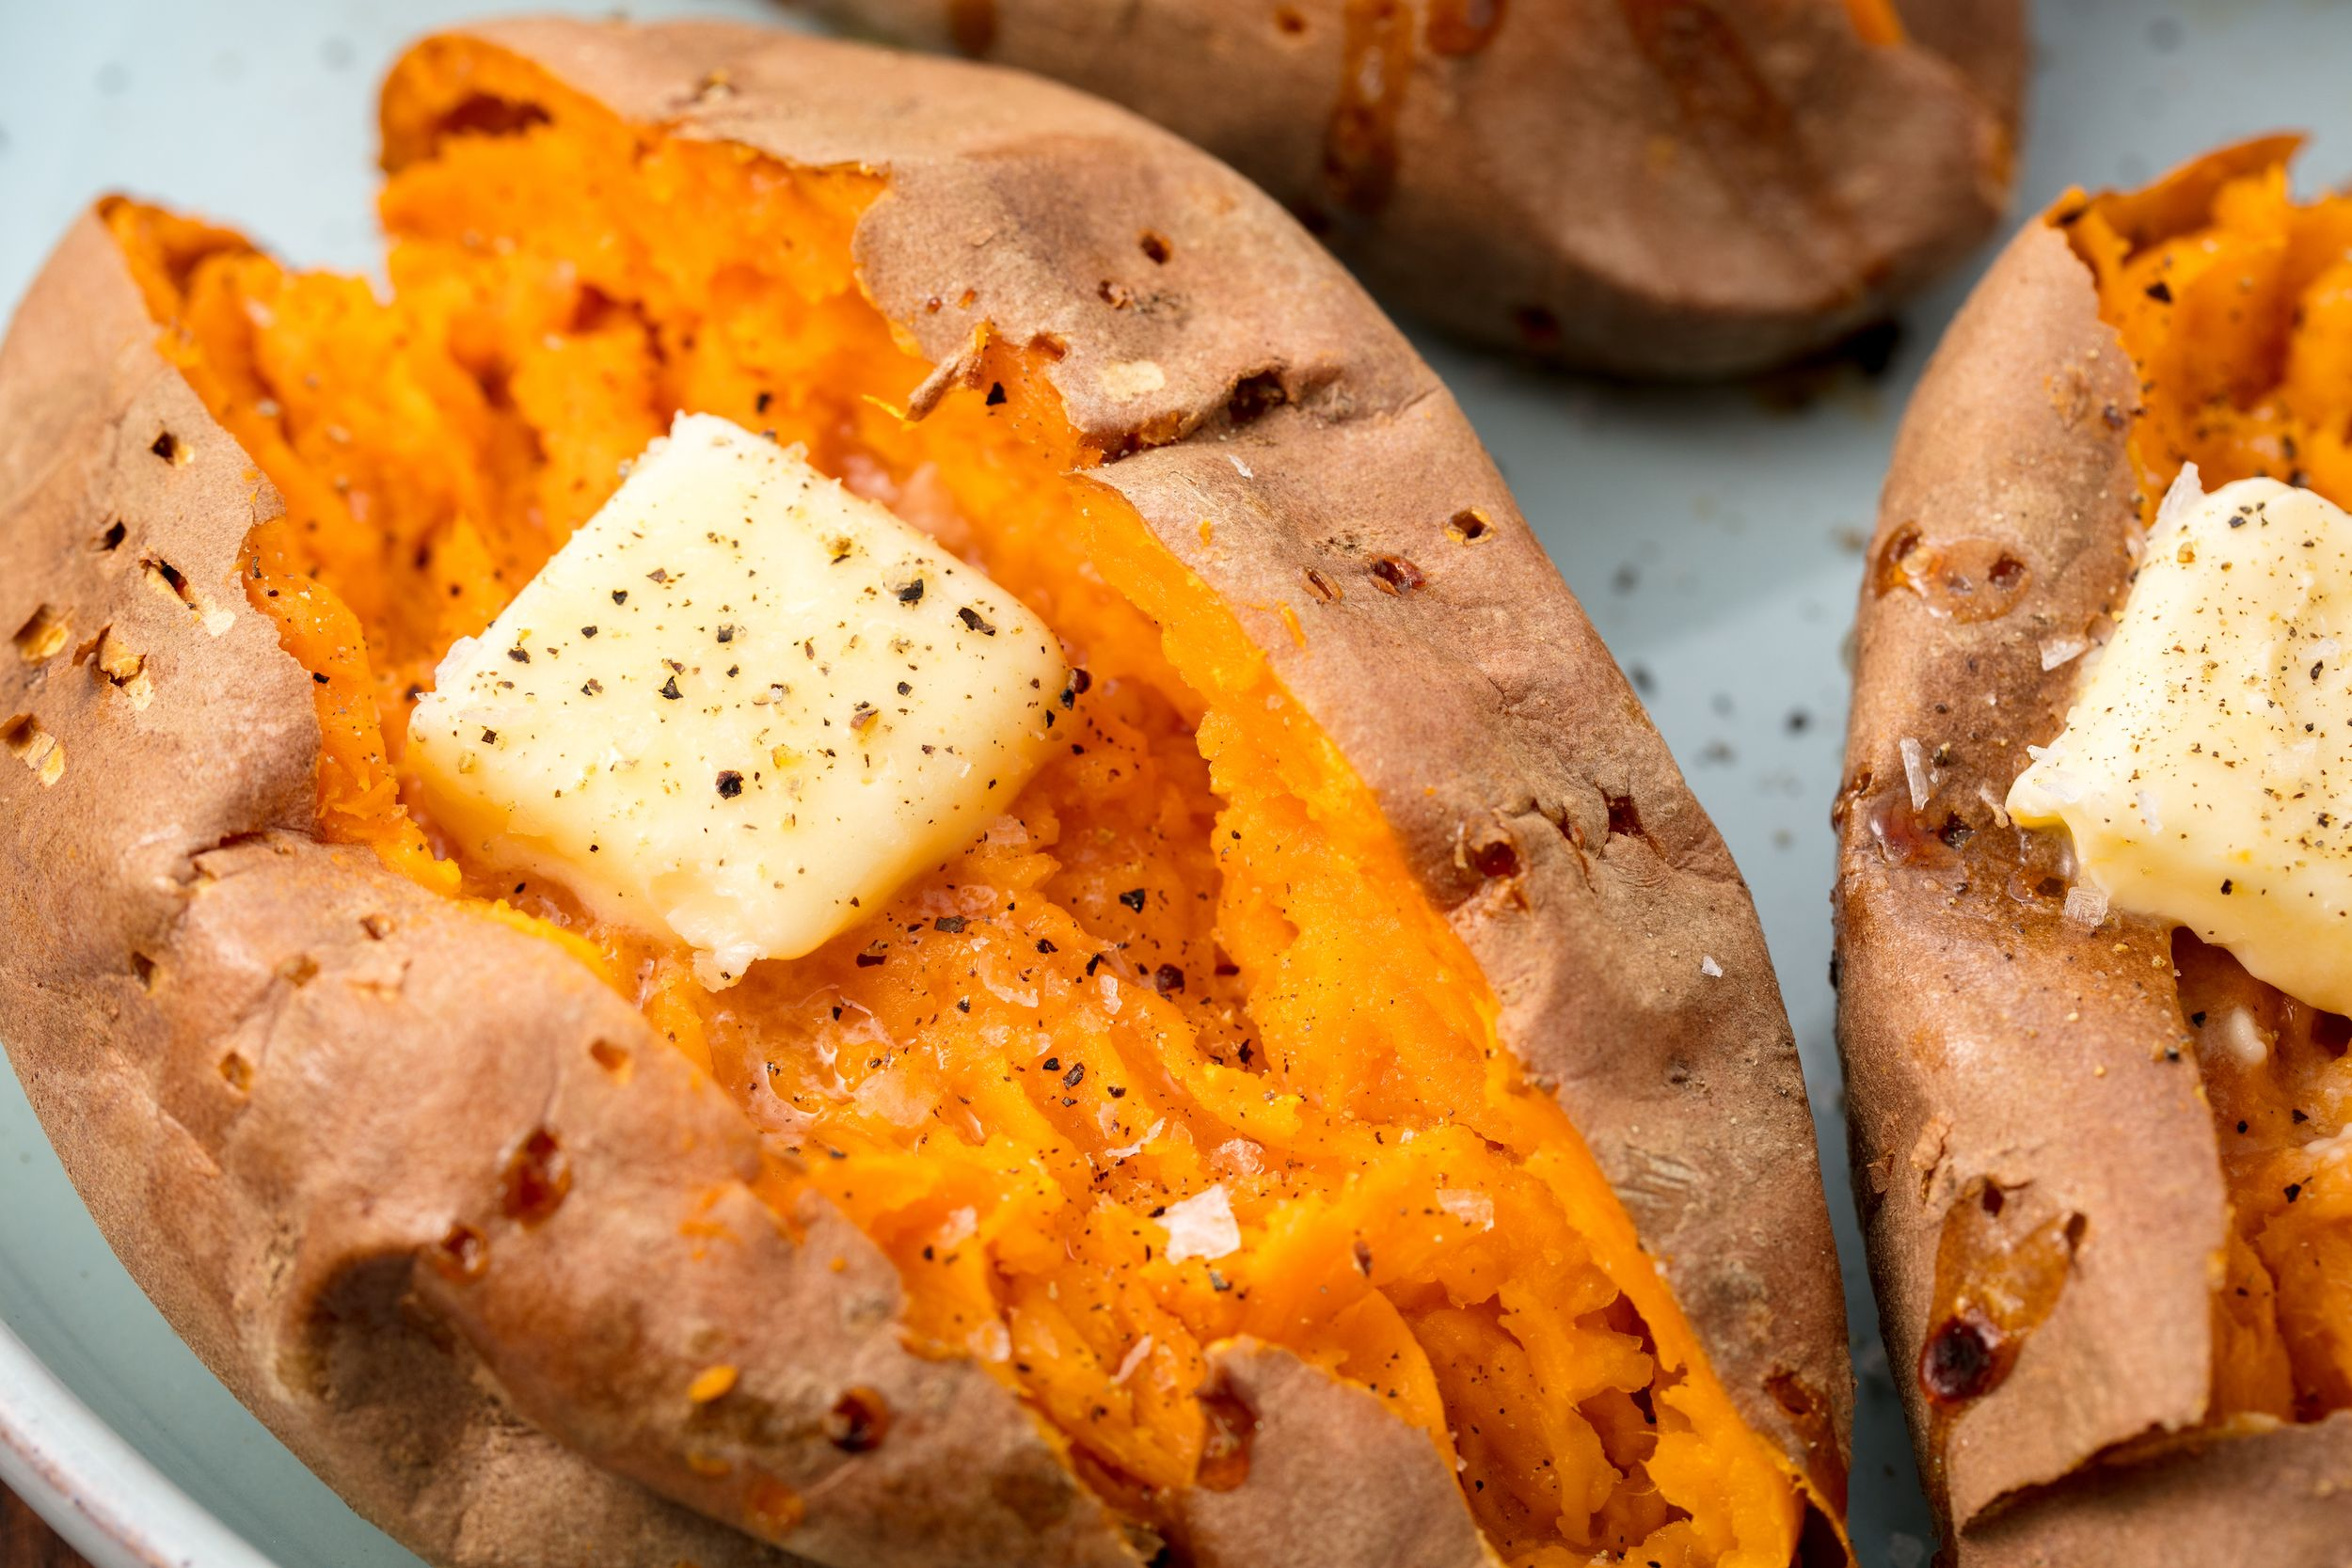 Best Baked Sweet Potato Recipe How To Bake Whole Sweet Potatoes